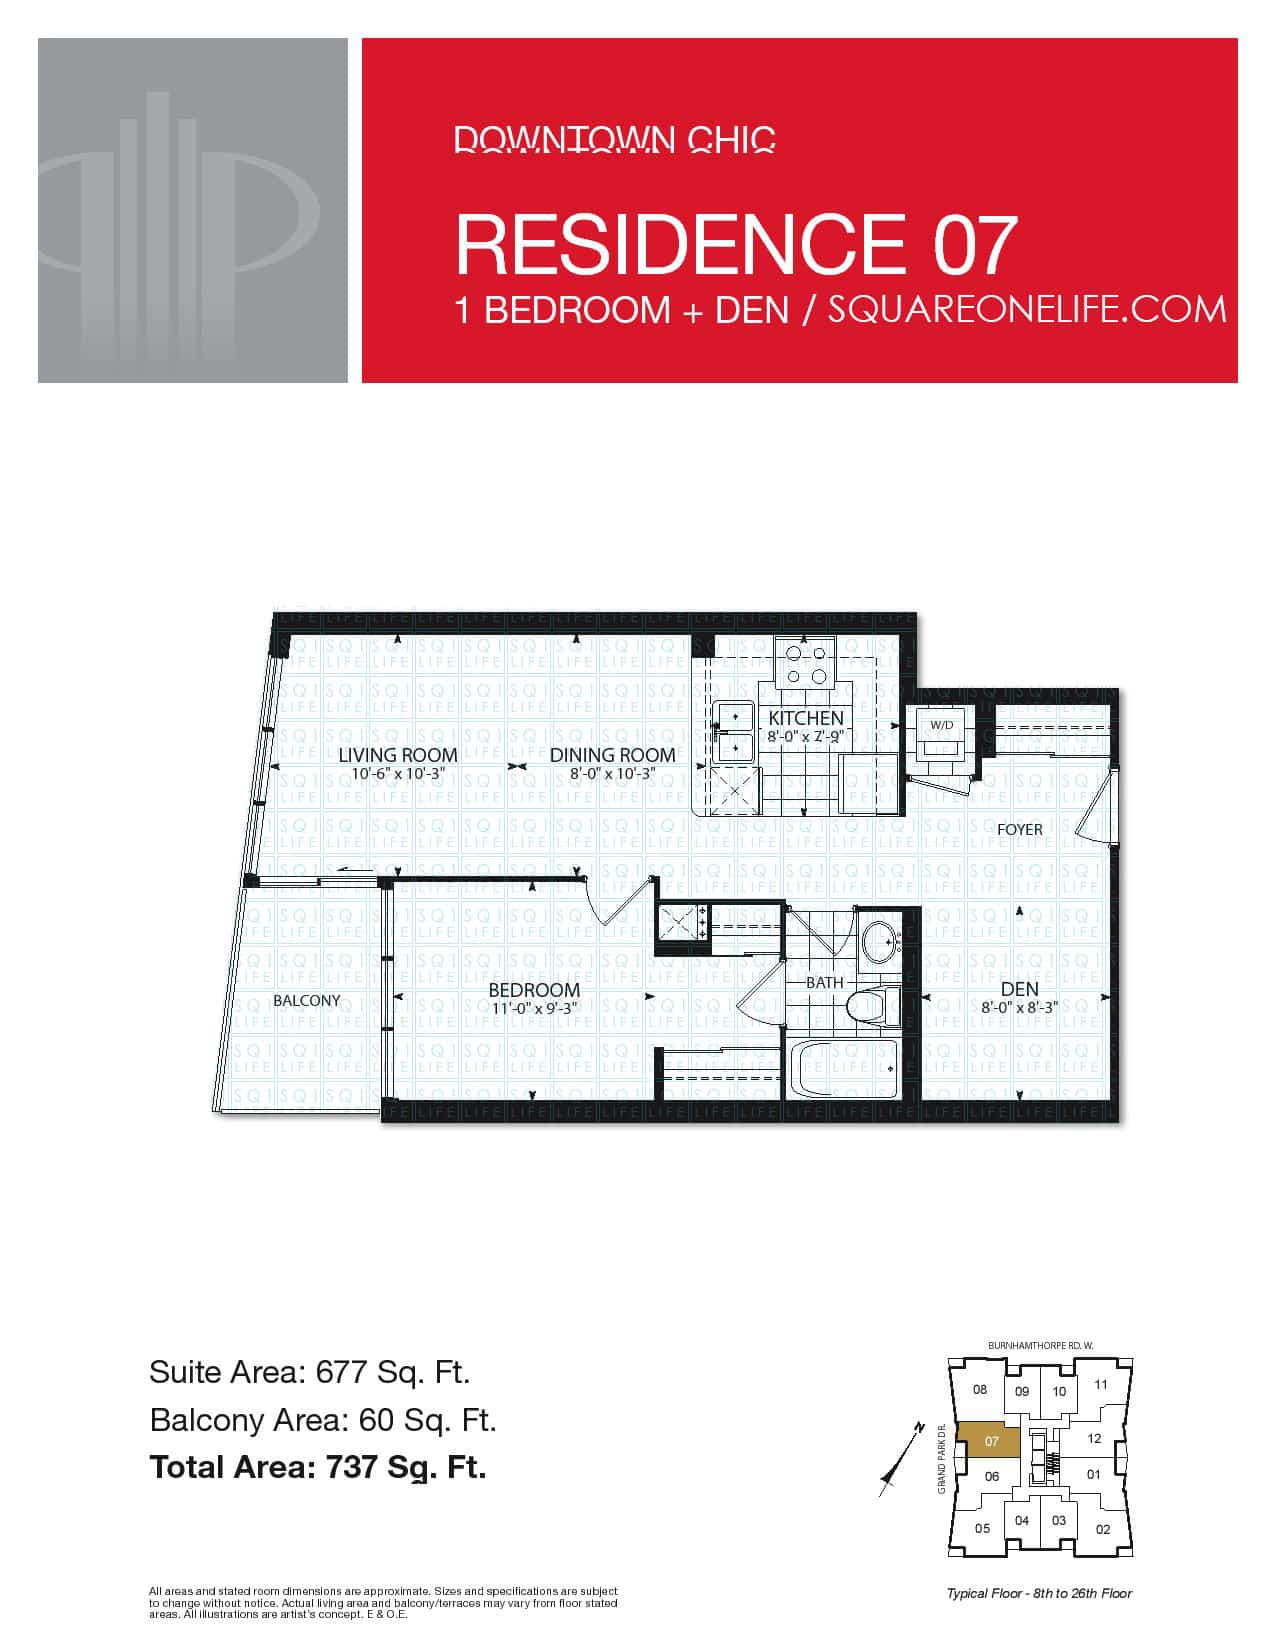 Grand-Park-Condo-3985-Grand-Park-Dr-Floorplan-Residence-7-1-Bed-1-Den-1-Bath pinnacle grand park condo Pinnacle Grand Park Condo Grand Park Condo 3985 Grand Park Dr Floorplan Residence 7 1 Bed 1 Den 1 Bath